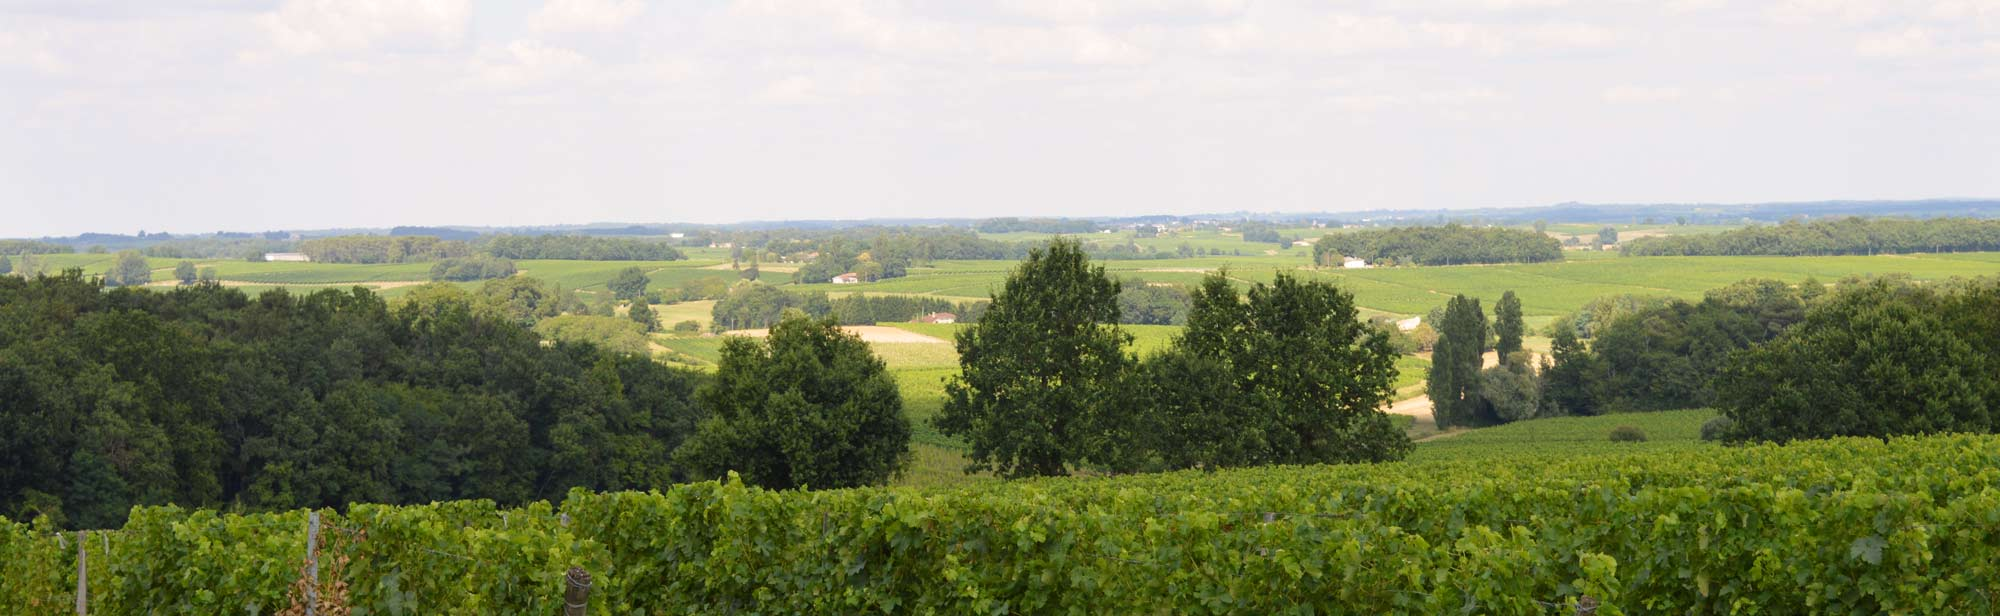 panorama_duprais_vignoble